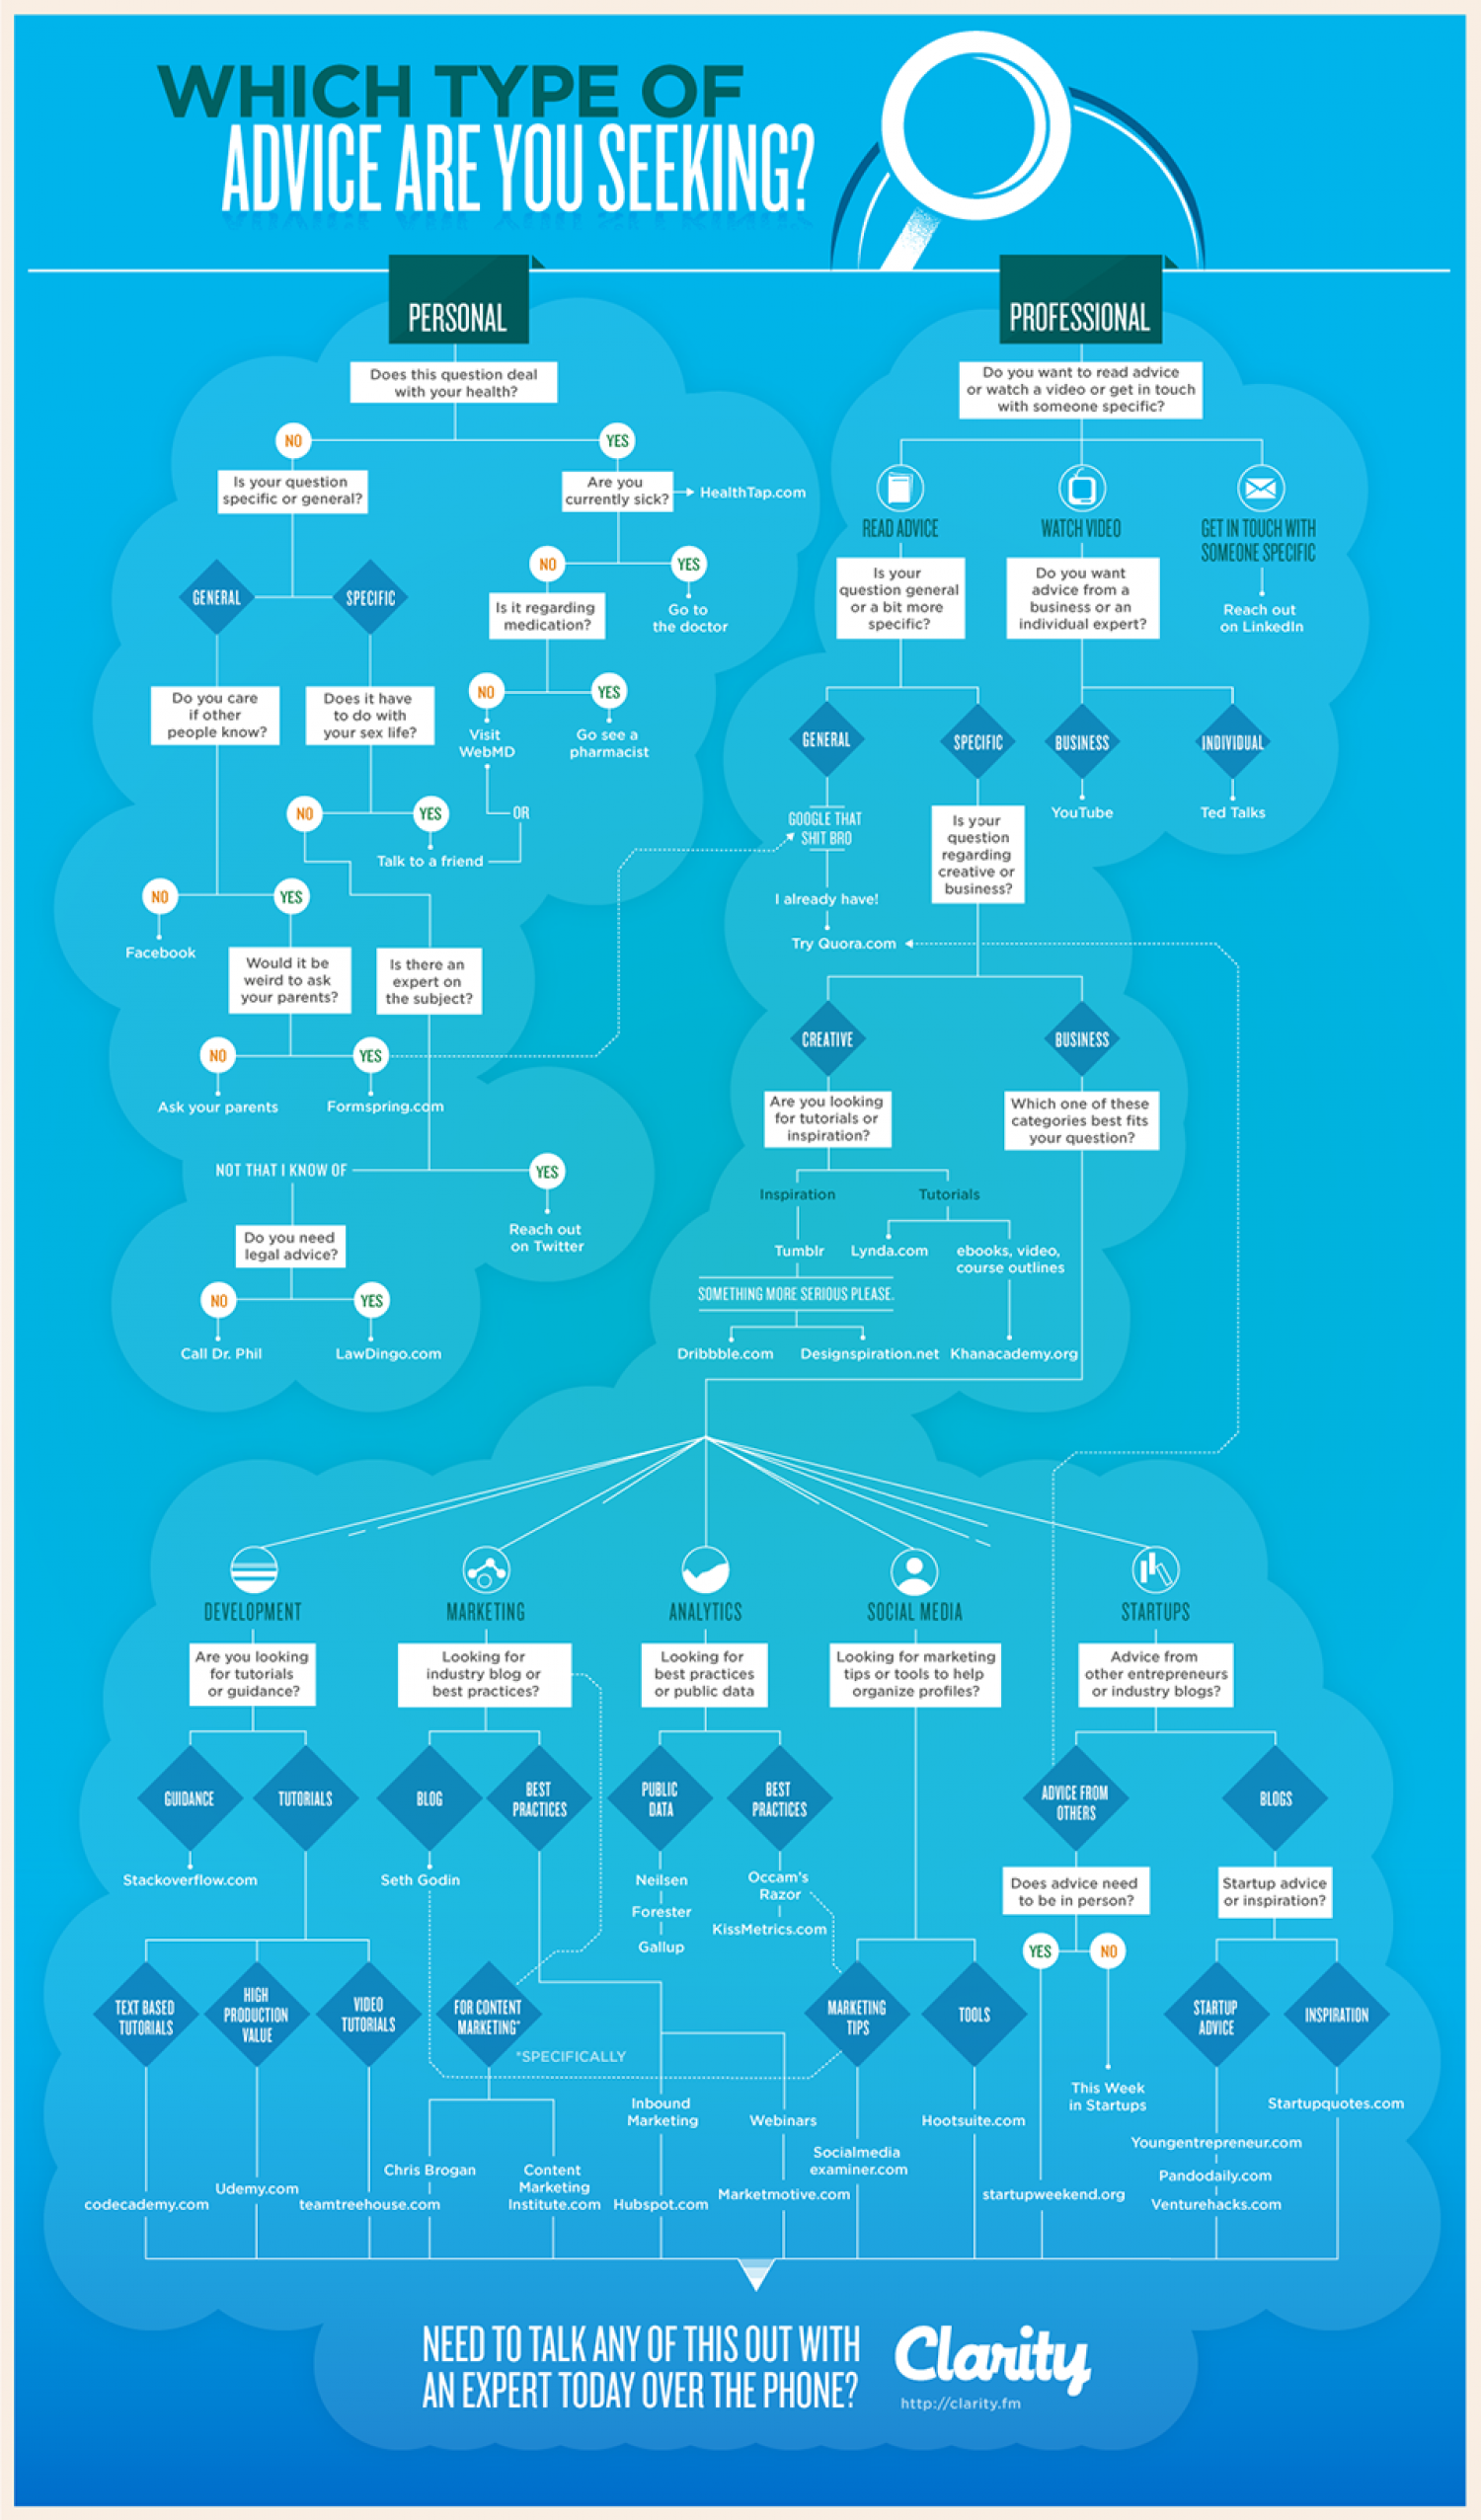 How to Find Great Advice for Just About Anything [INFOGRAPHIC] Infographic